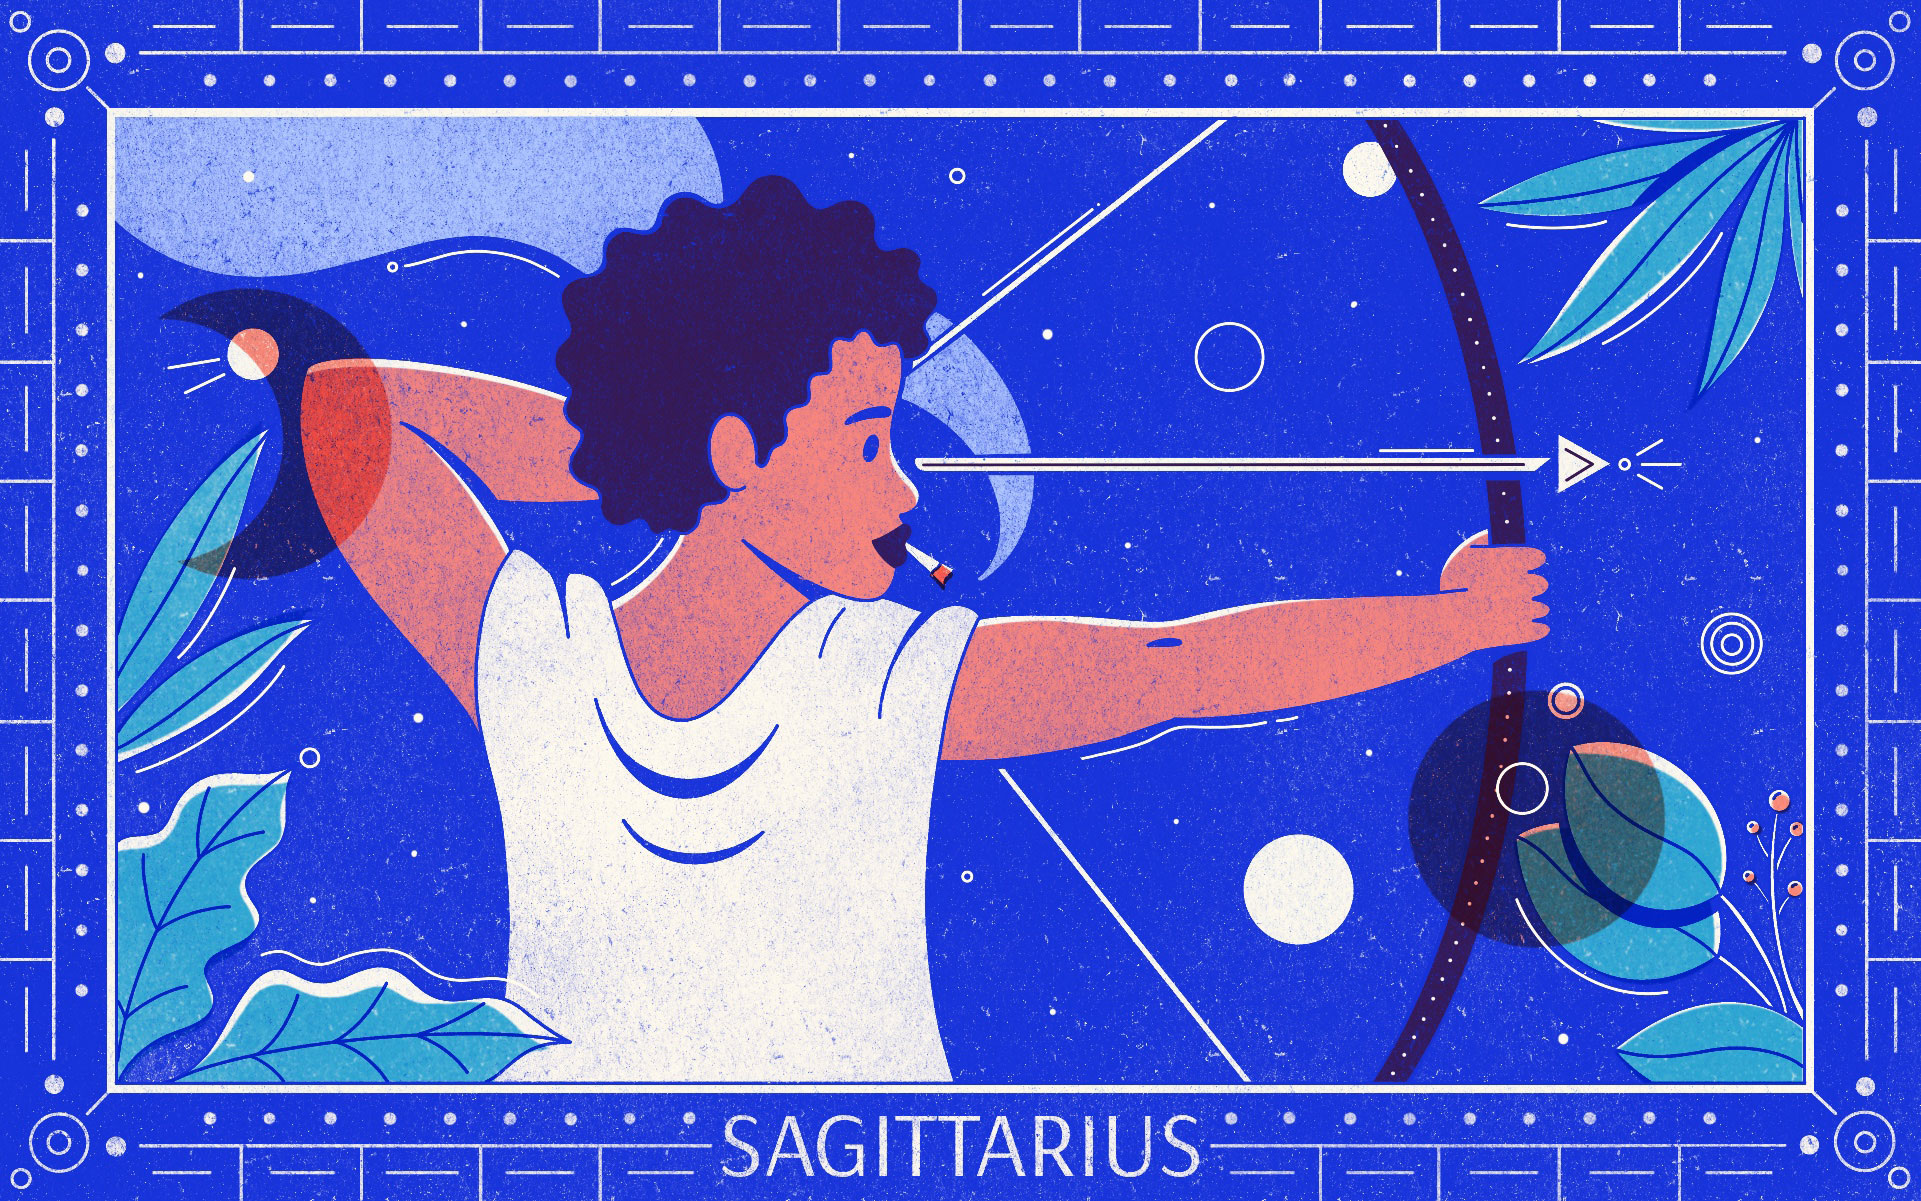 SAGITTARIUS web Gillian Levine - Star signs and cannabis strains: July 2020 horoscopes